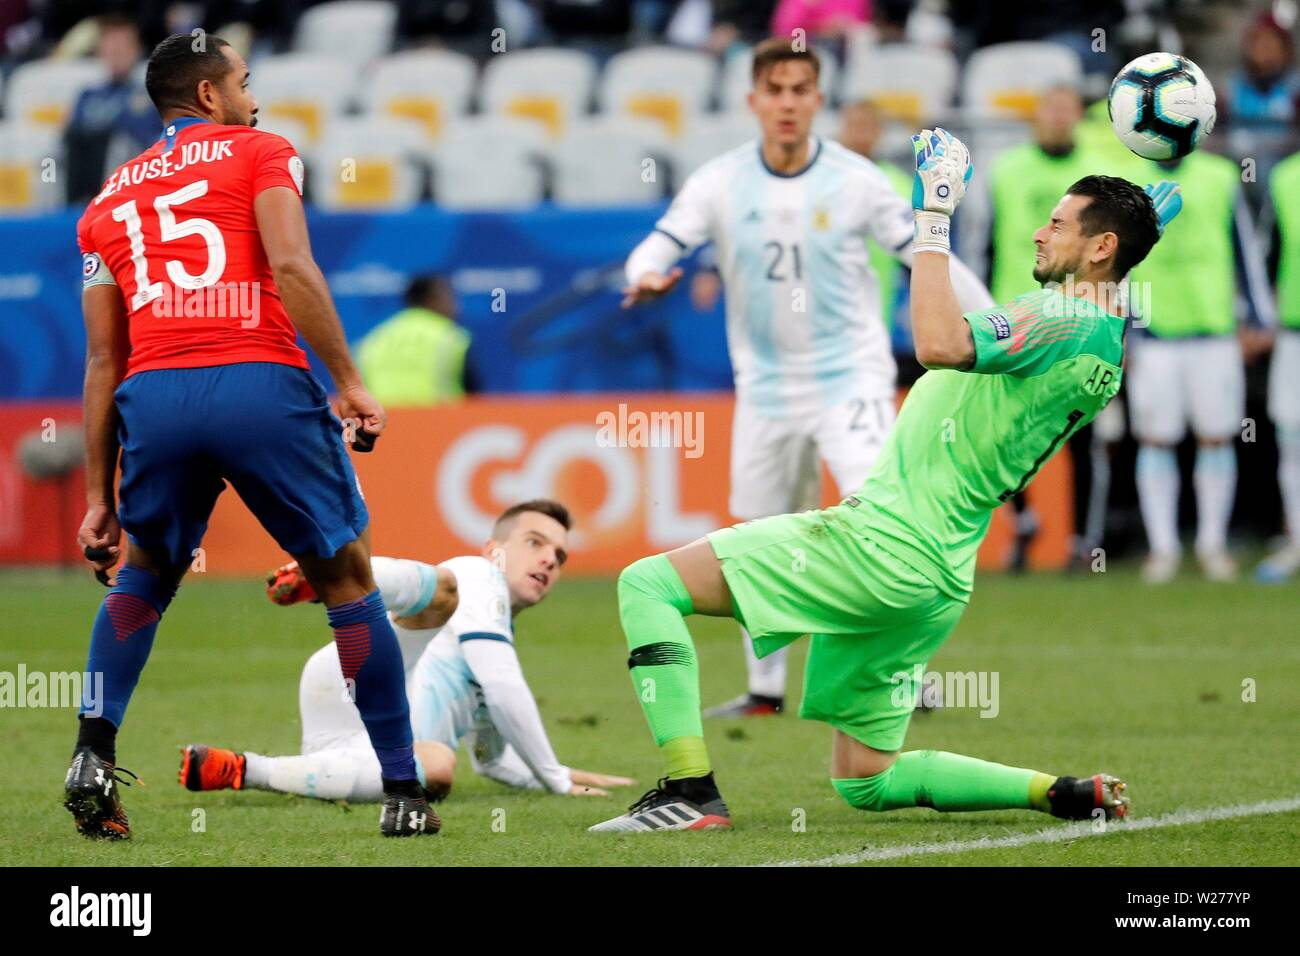 Sao Paulo, Brazil. 06th July, 2019. Argentina's Nicolas Tagliafico (C-down) in action against Chile's goalkeeper Gabriel Arias during the Copa America 2019 3rd place soccer match between Argentina and Chile, at Arena Corinthians Stadium in Sao Paulo, Brazil, 6 July 2019. Credit: Paulo Whitaker/EFE/Alamy Live News - Stock Image